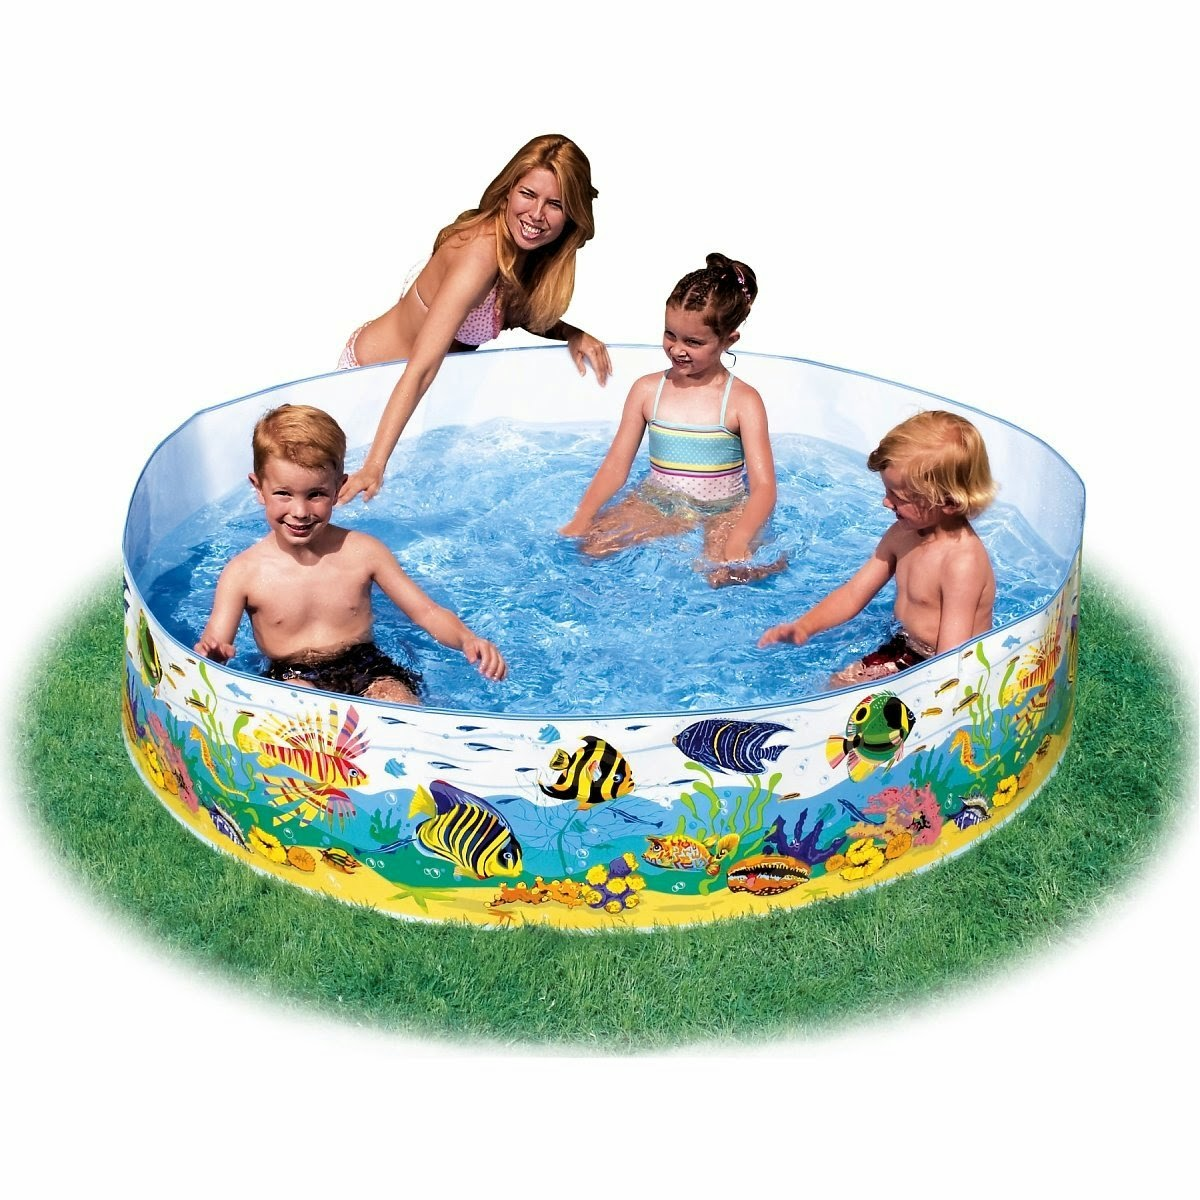 Plastic Pools For Kids kids pools